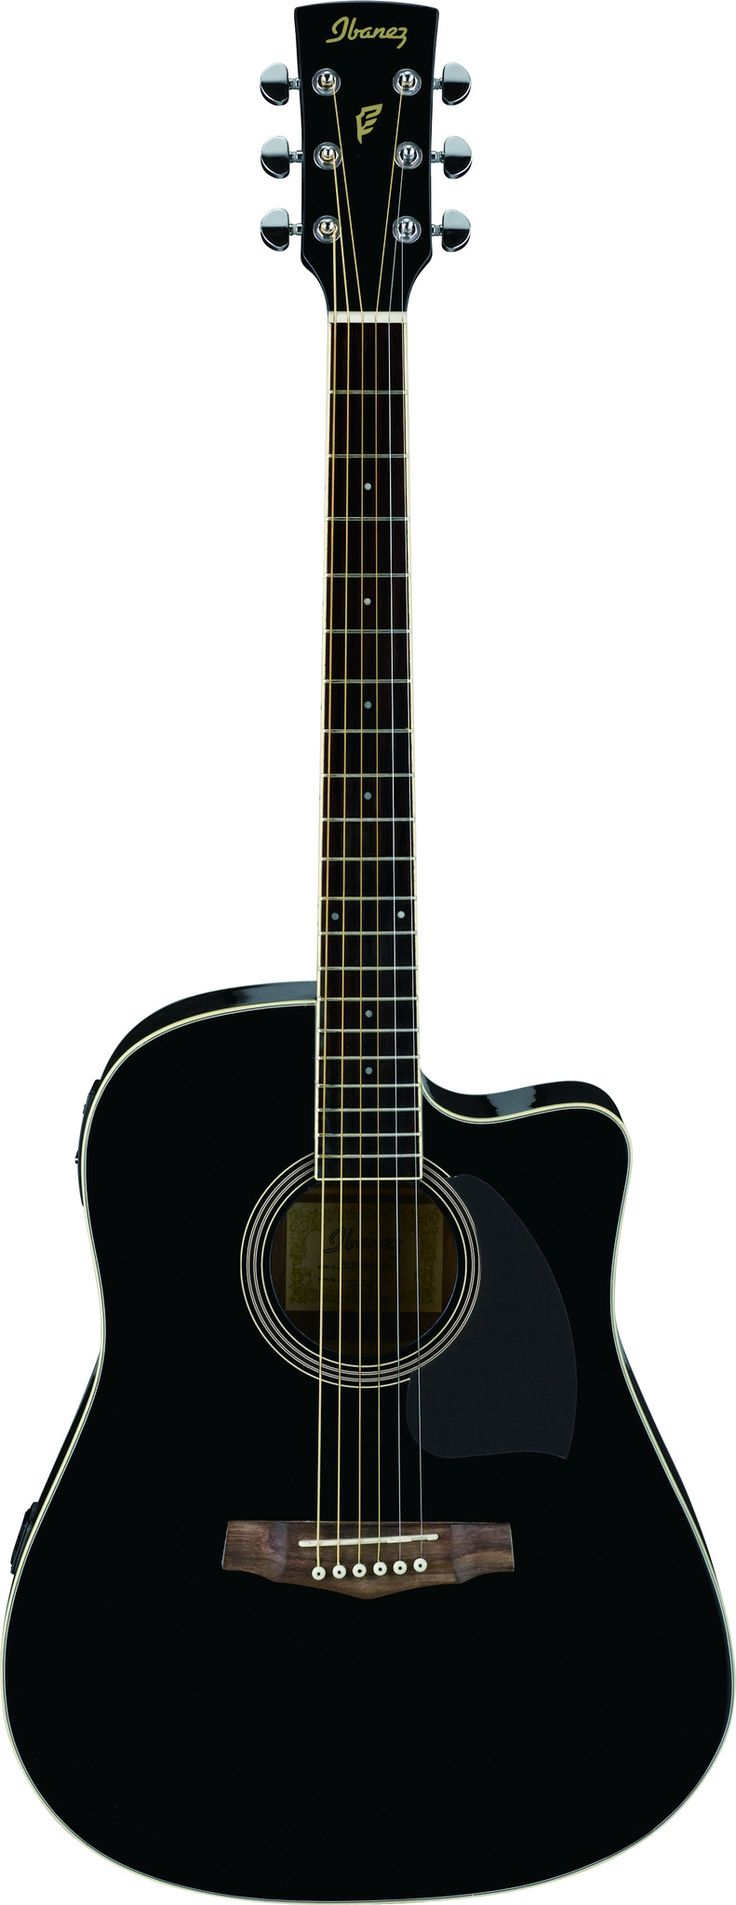 dating ibanez acoustic guitars Dating ibanez guitars or establishing the year they were made is a little bit tricky below is how it was explained to me by ibanez on 10/22/98 on all guitars made before and up to 1987 the first two digits of the serial number would designate the year of.